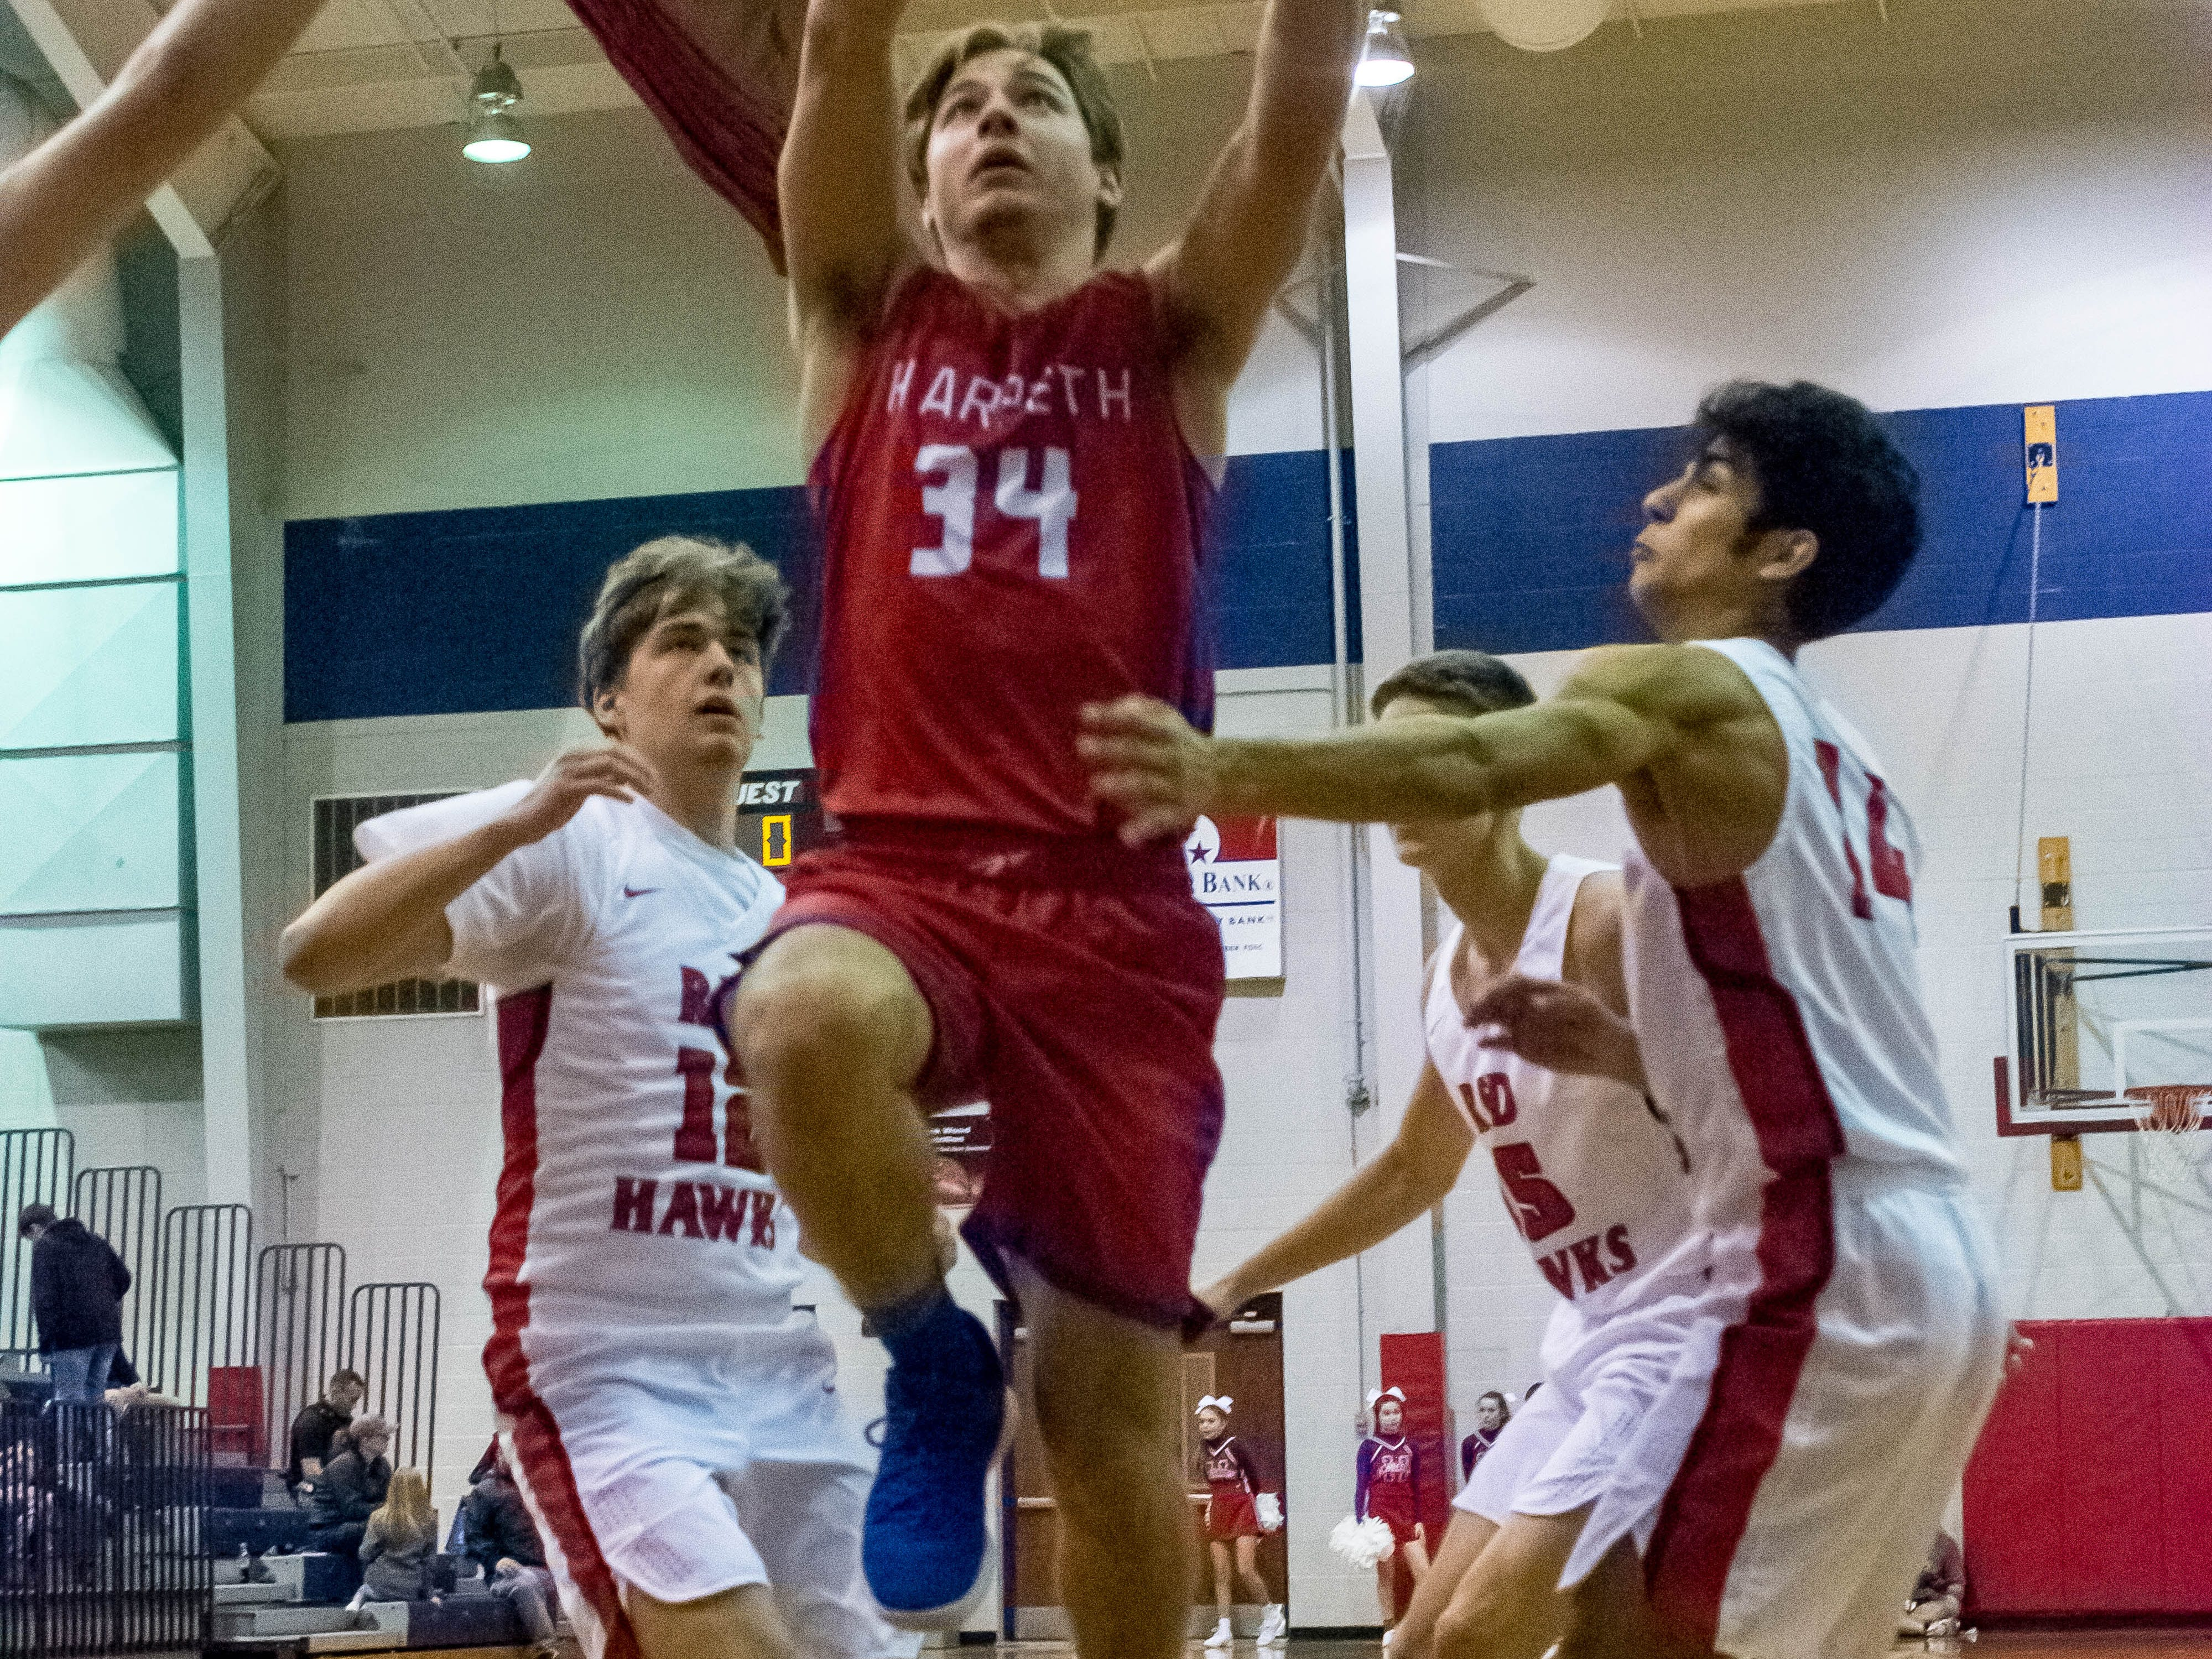 Harpeth's Luke Liles going up for two early in the 1st period